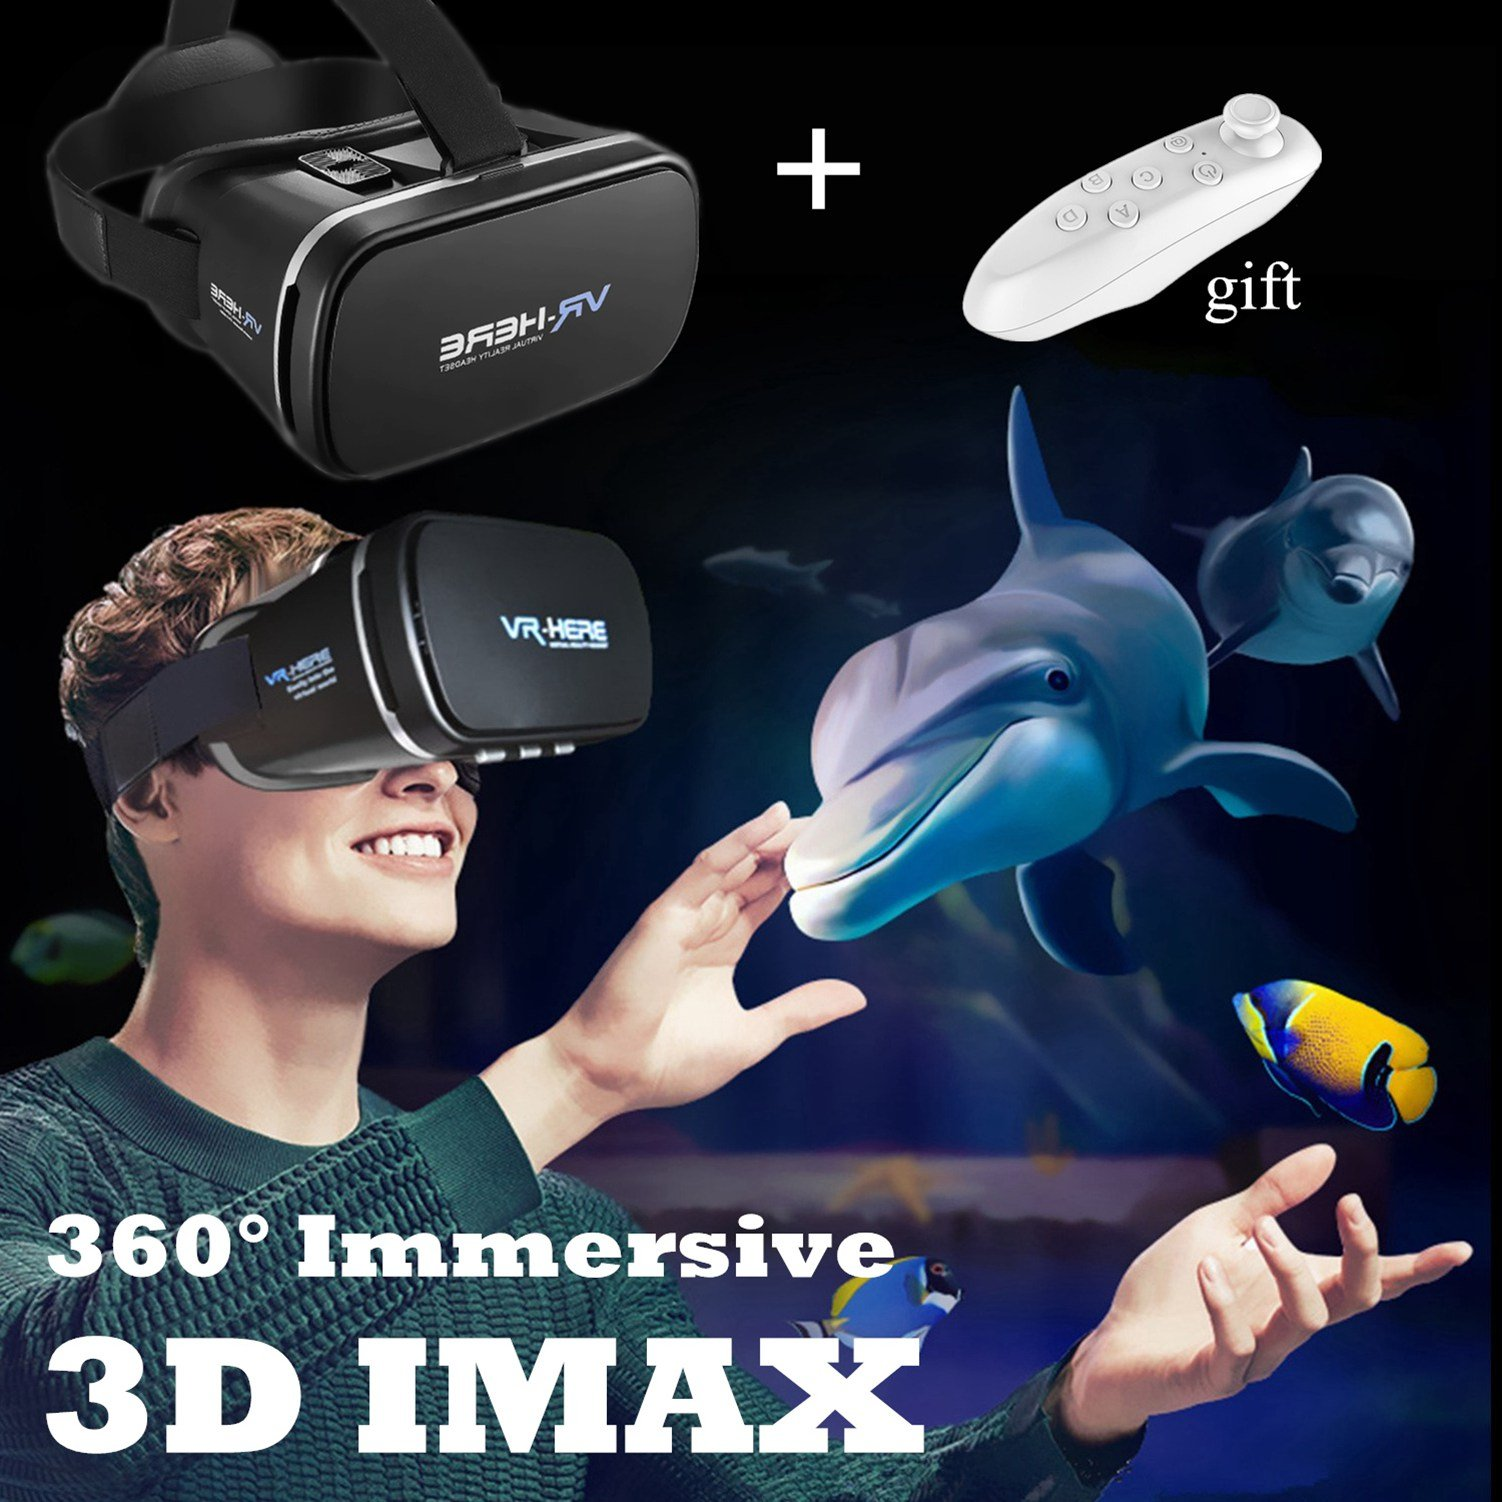 TSANGLIGHT 3D VR Headset with Remote New Virtual Reality Goggles, VR Glasses Movie Video Game Viewer for iPhone & Android 4.0-6.0'' Smartphones Like iPhone X 8 7 6 Plus Samsung S8 S7 S6 Edge, Black by TSANGLIGHT